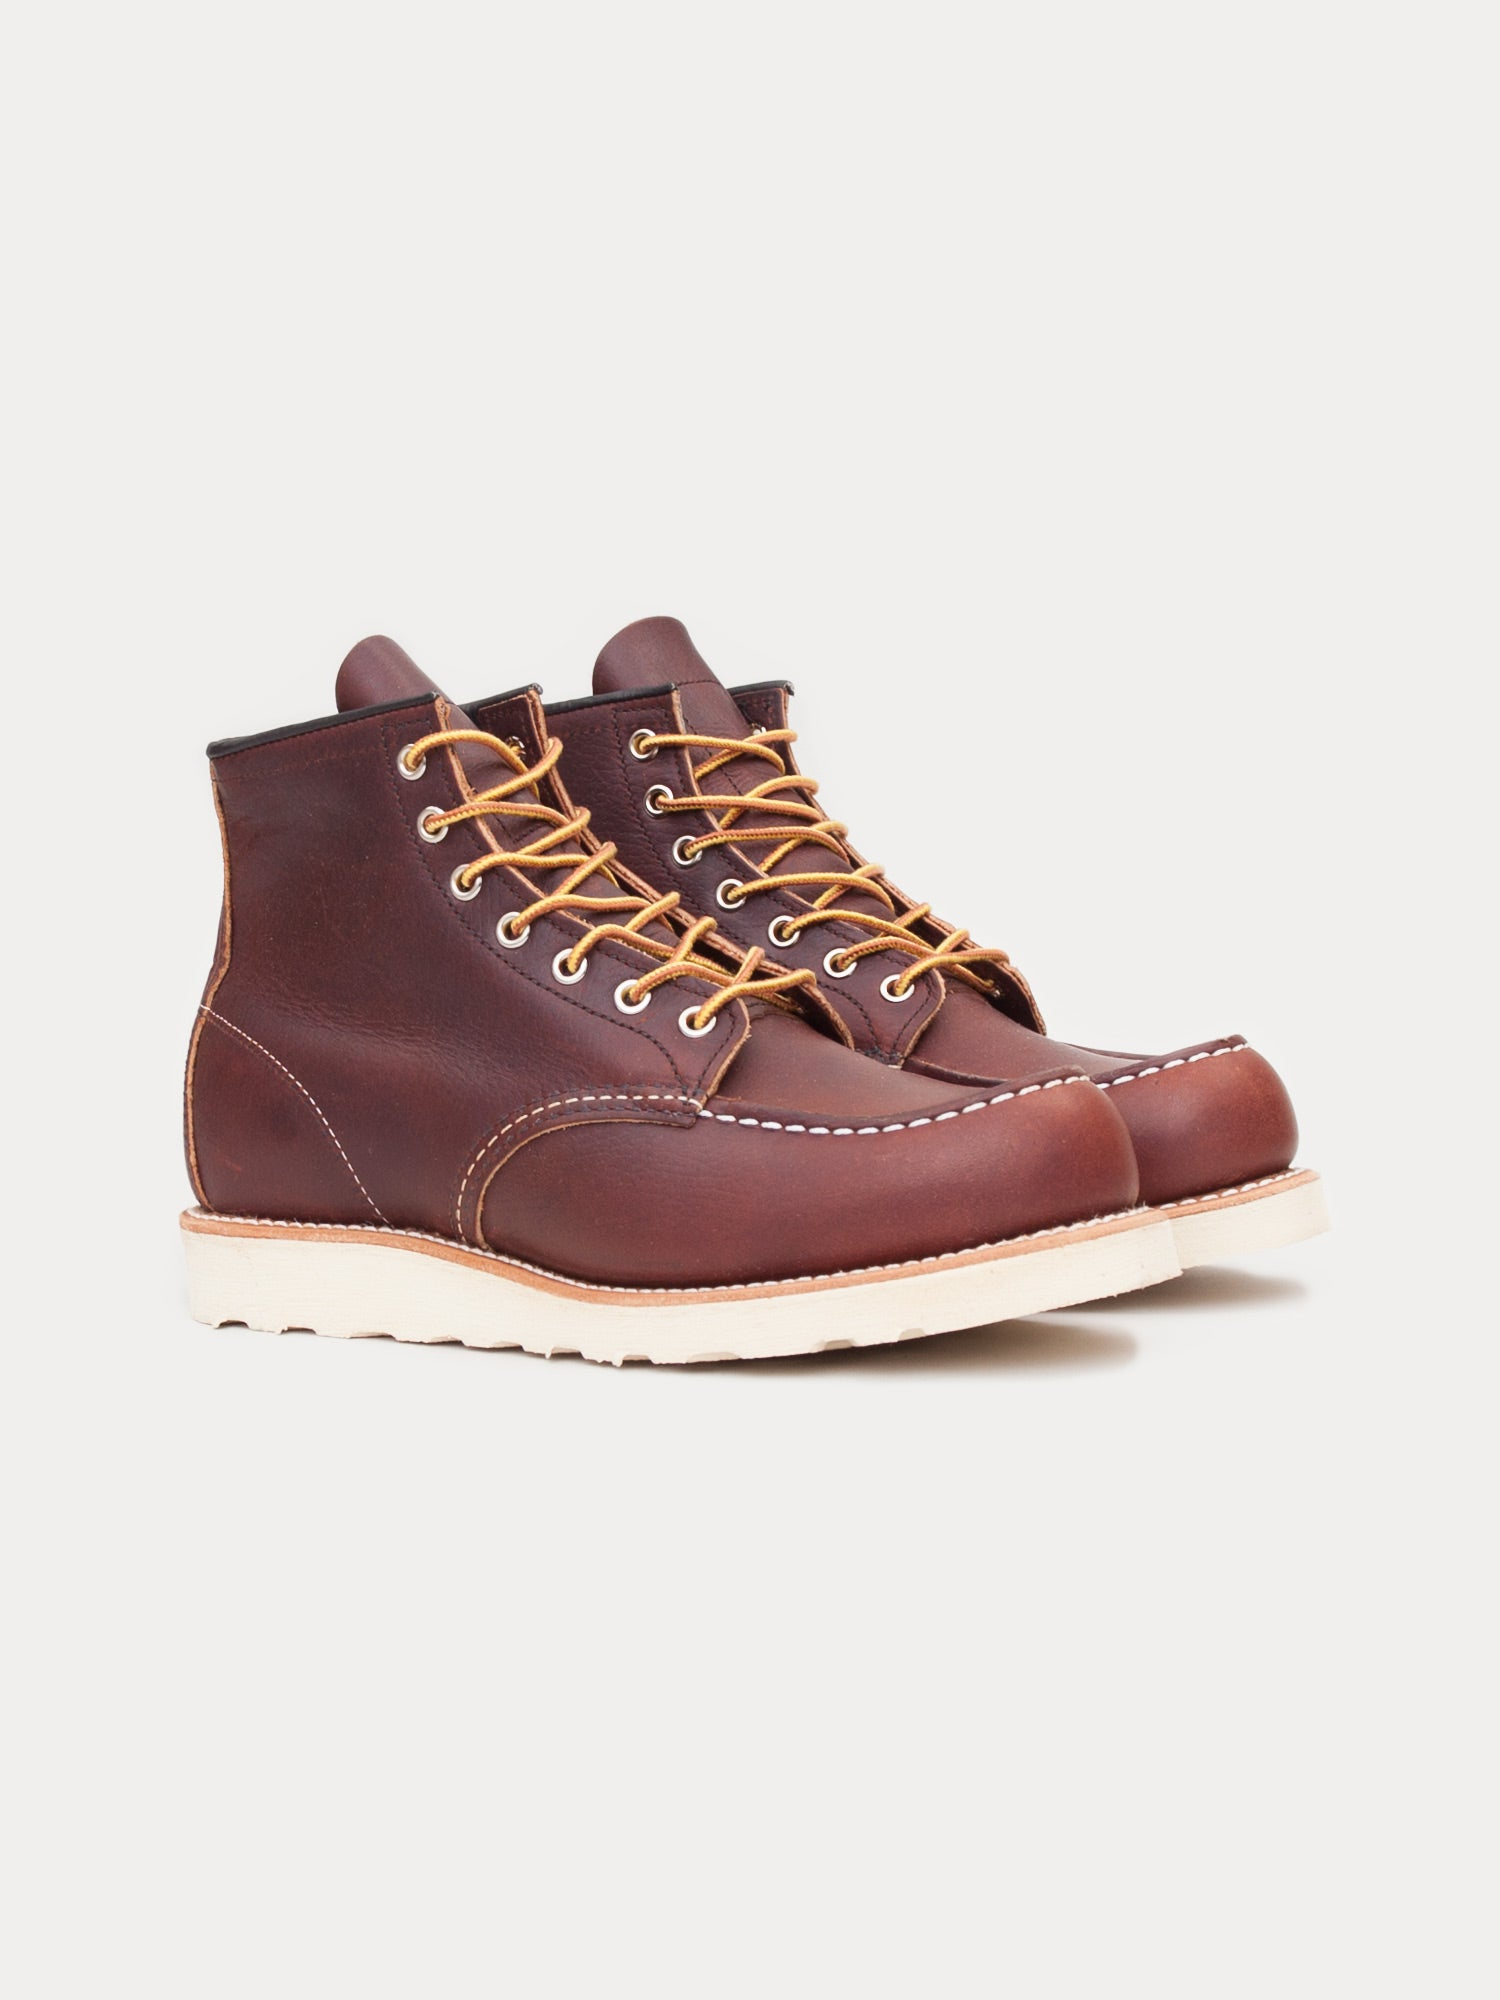 Redwing Moc Toe Boot (Brown)